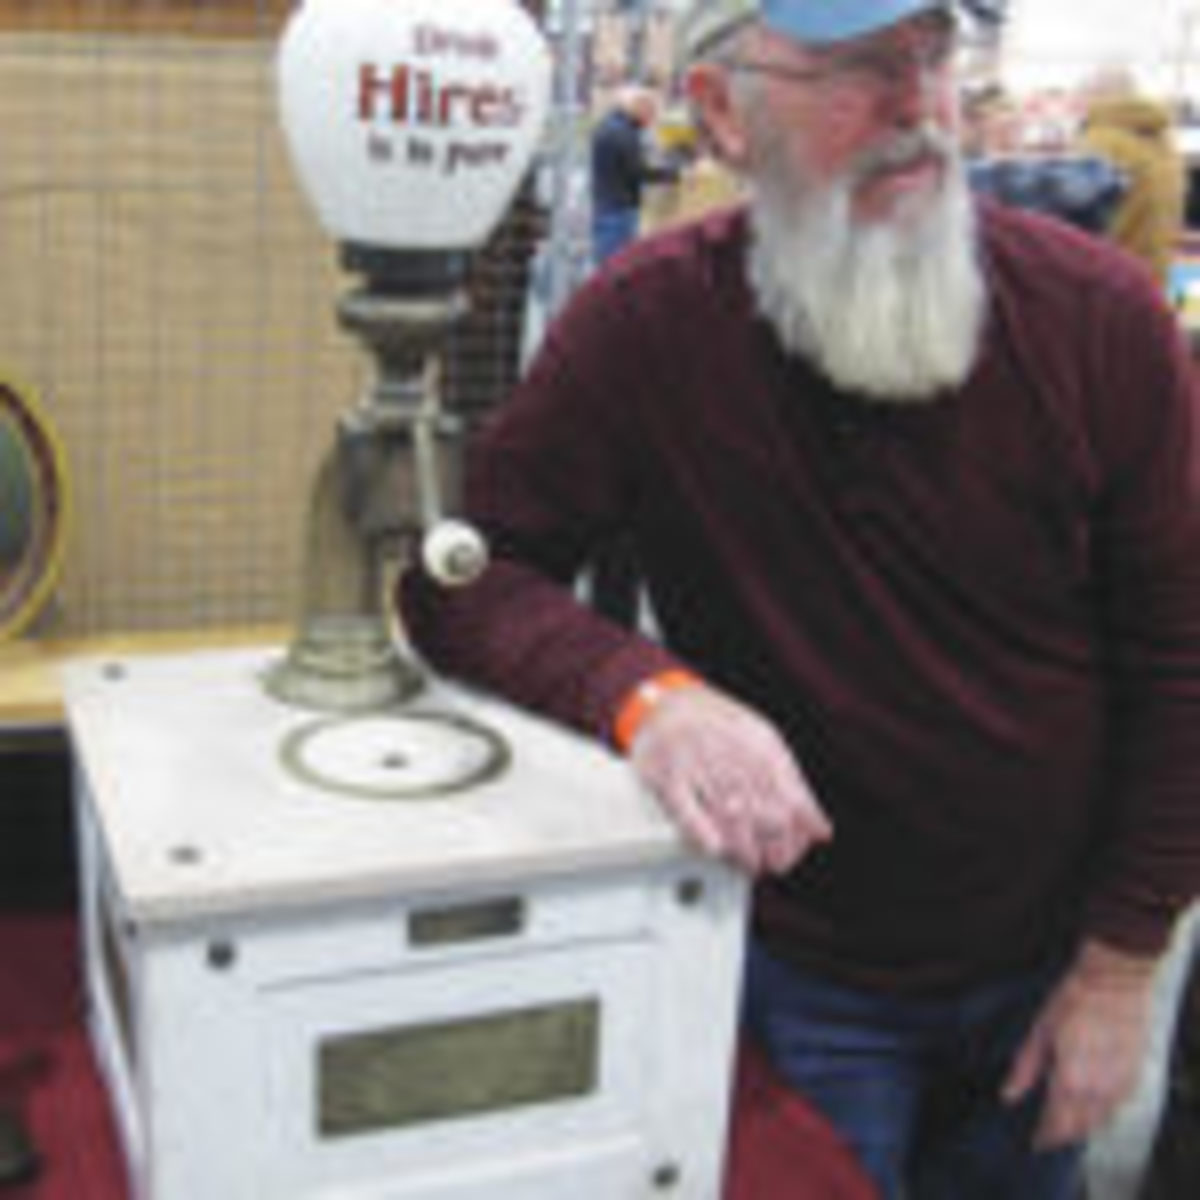 Dave Smith, Old 54 Antiques, Macks Creek, Missouri, uses his early 1900s Hires Root Beer Syrup dispenser as an arm rest. You could do the same if you like, for $5,200. All photos courtesy Jack Kelly